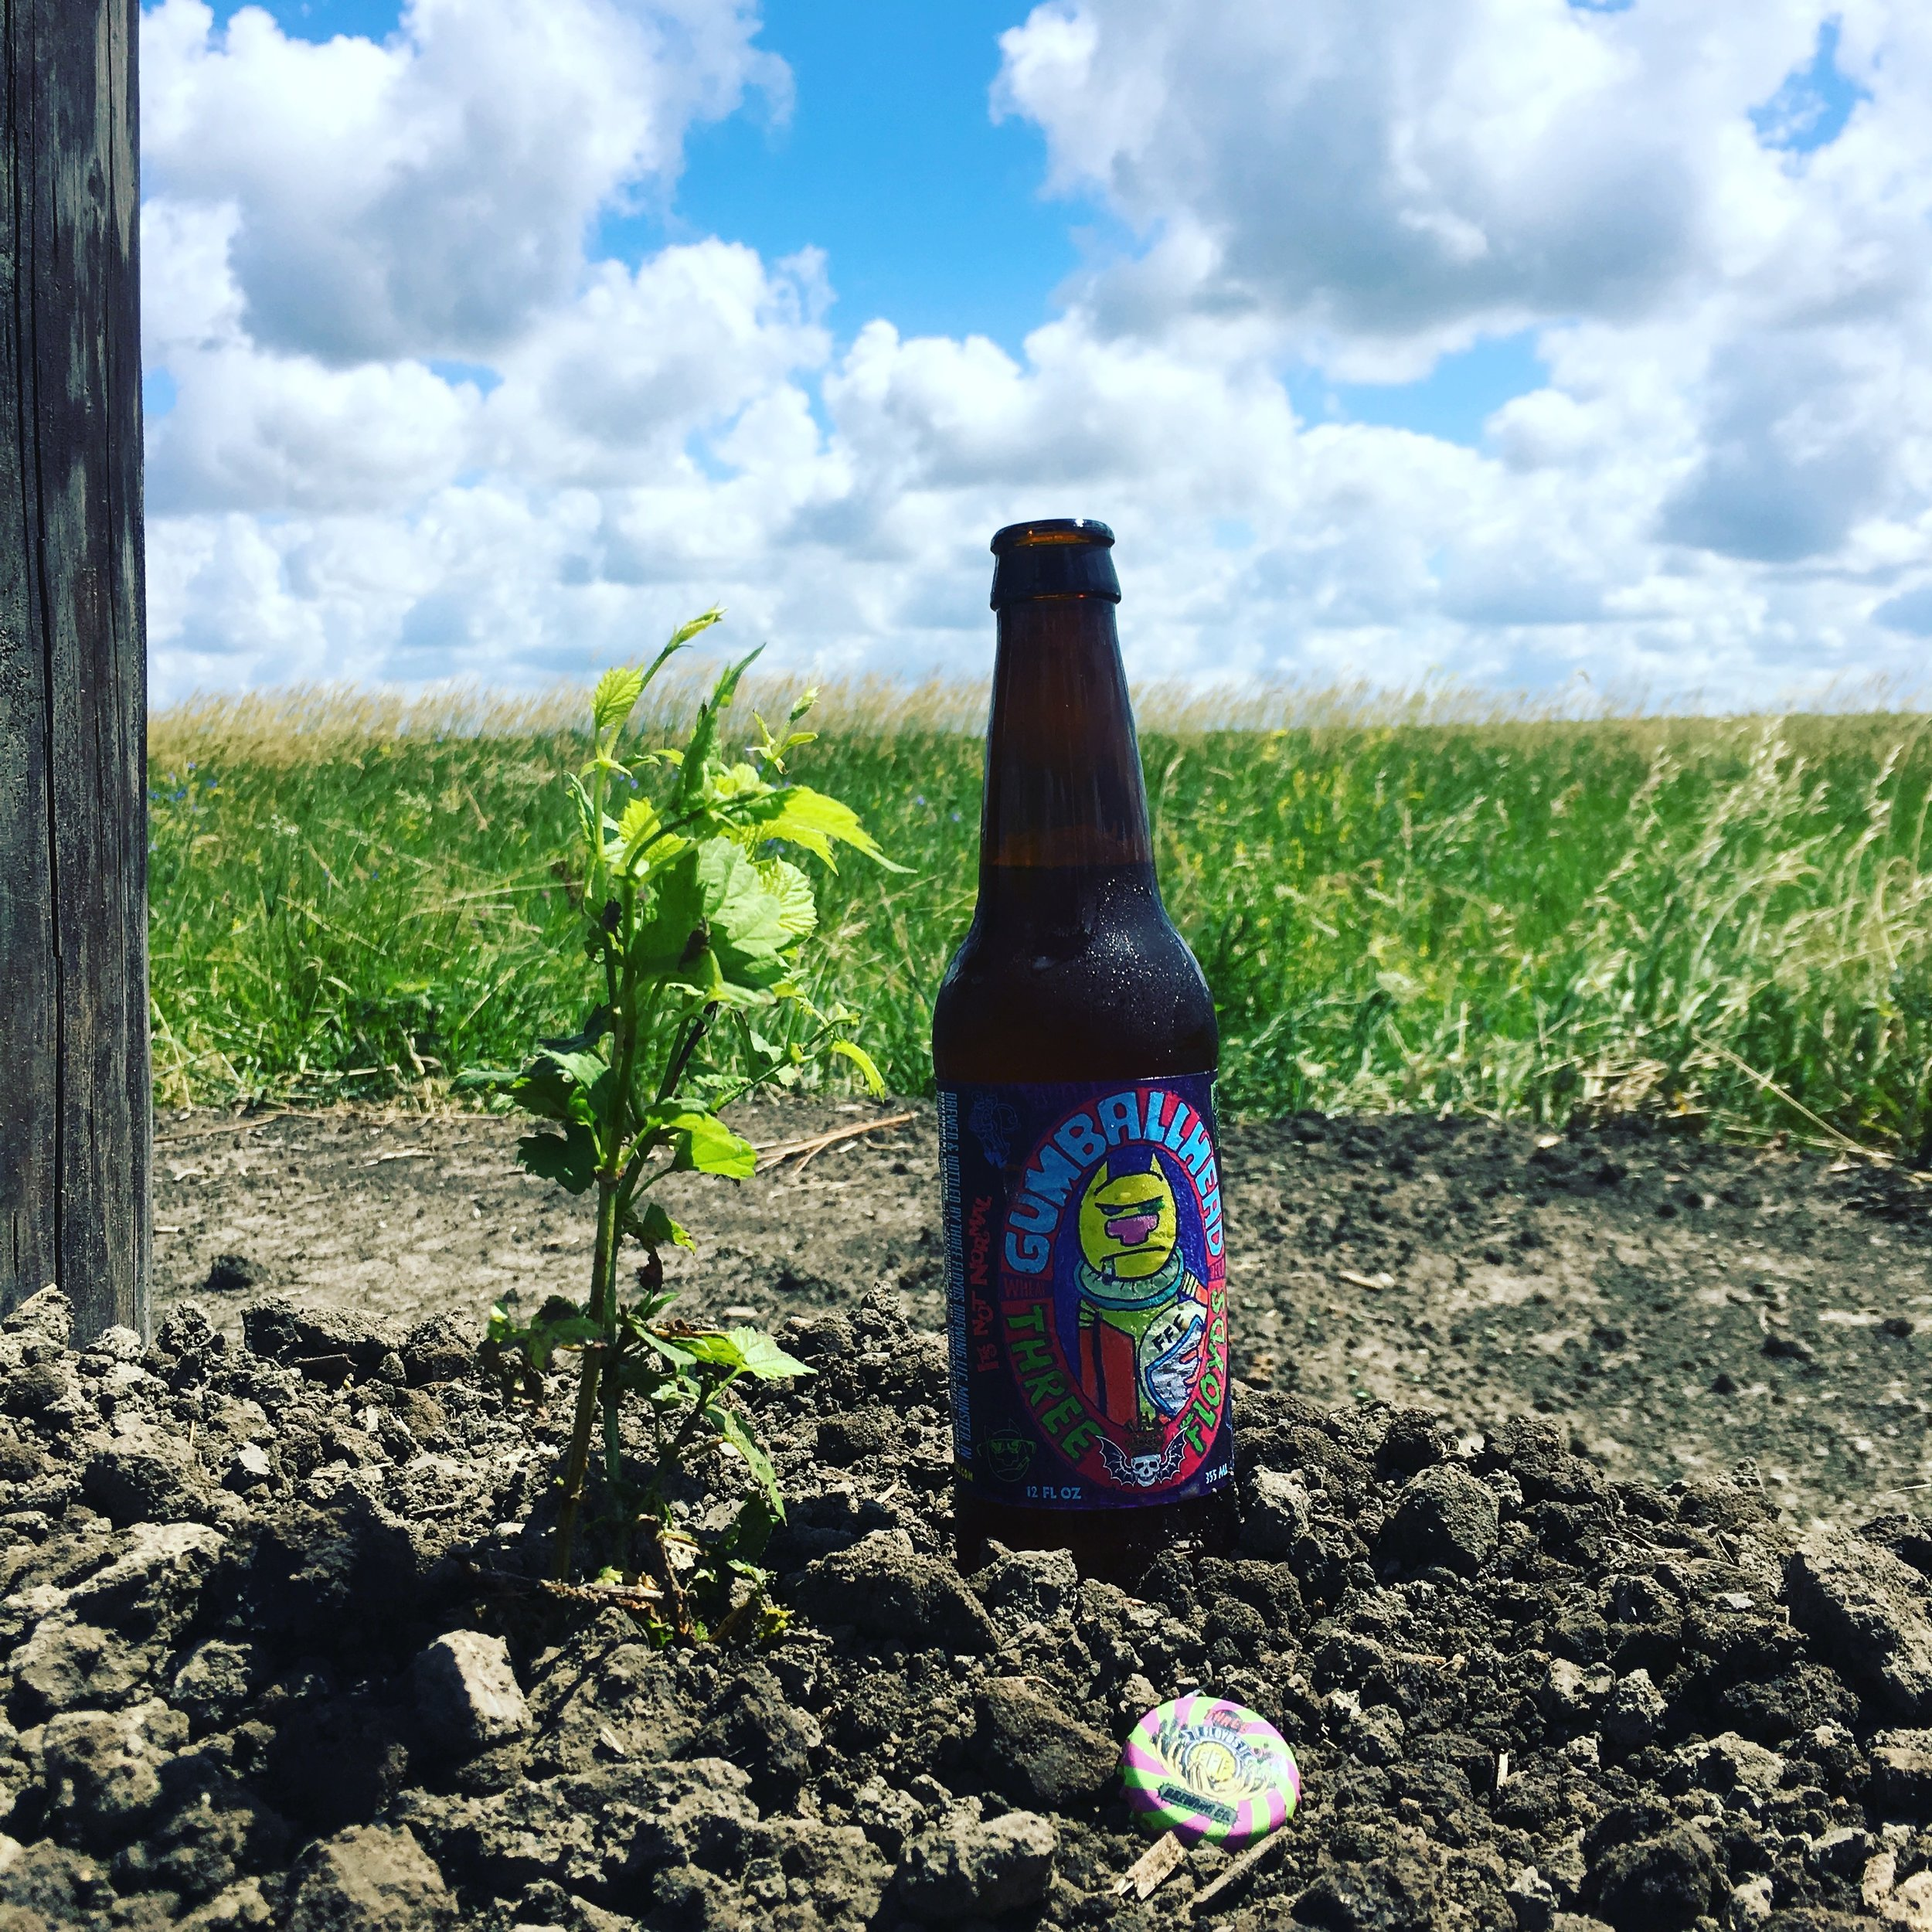 Last hop planted, first beer downed.